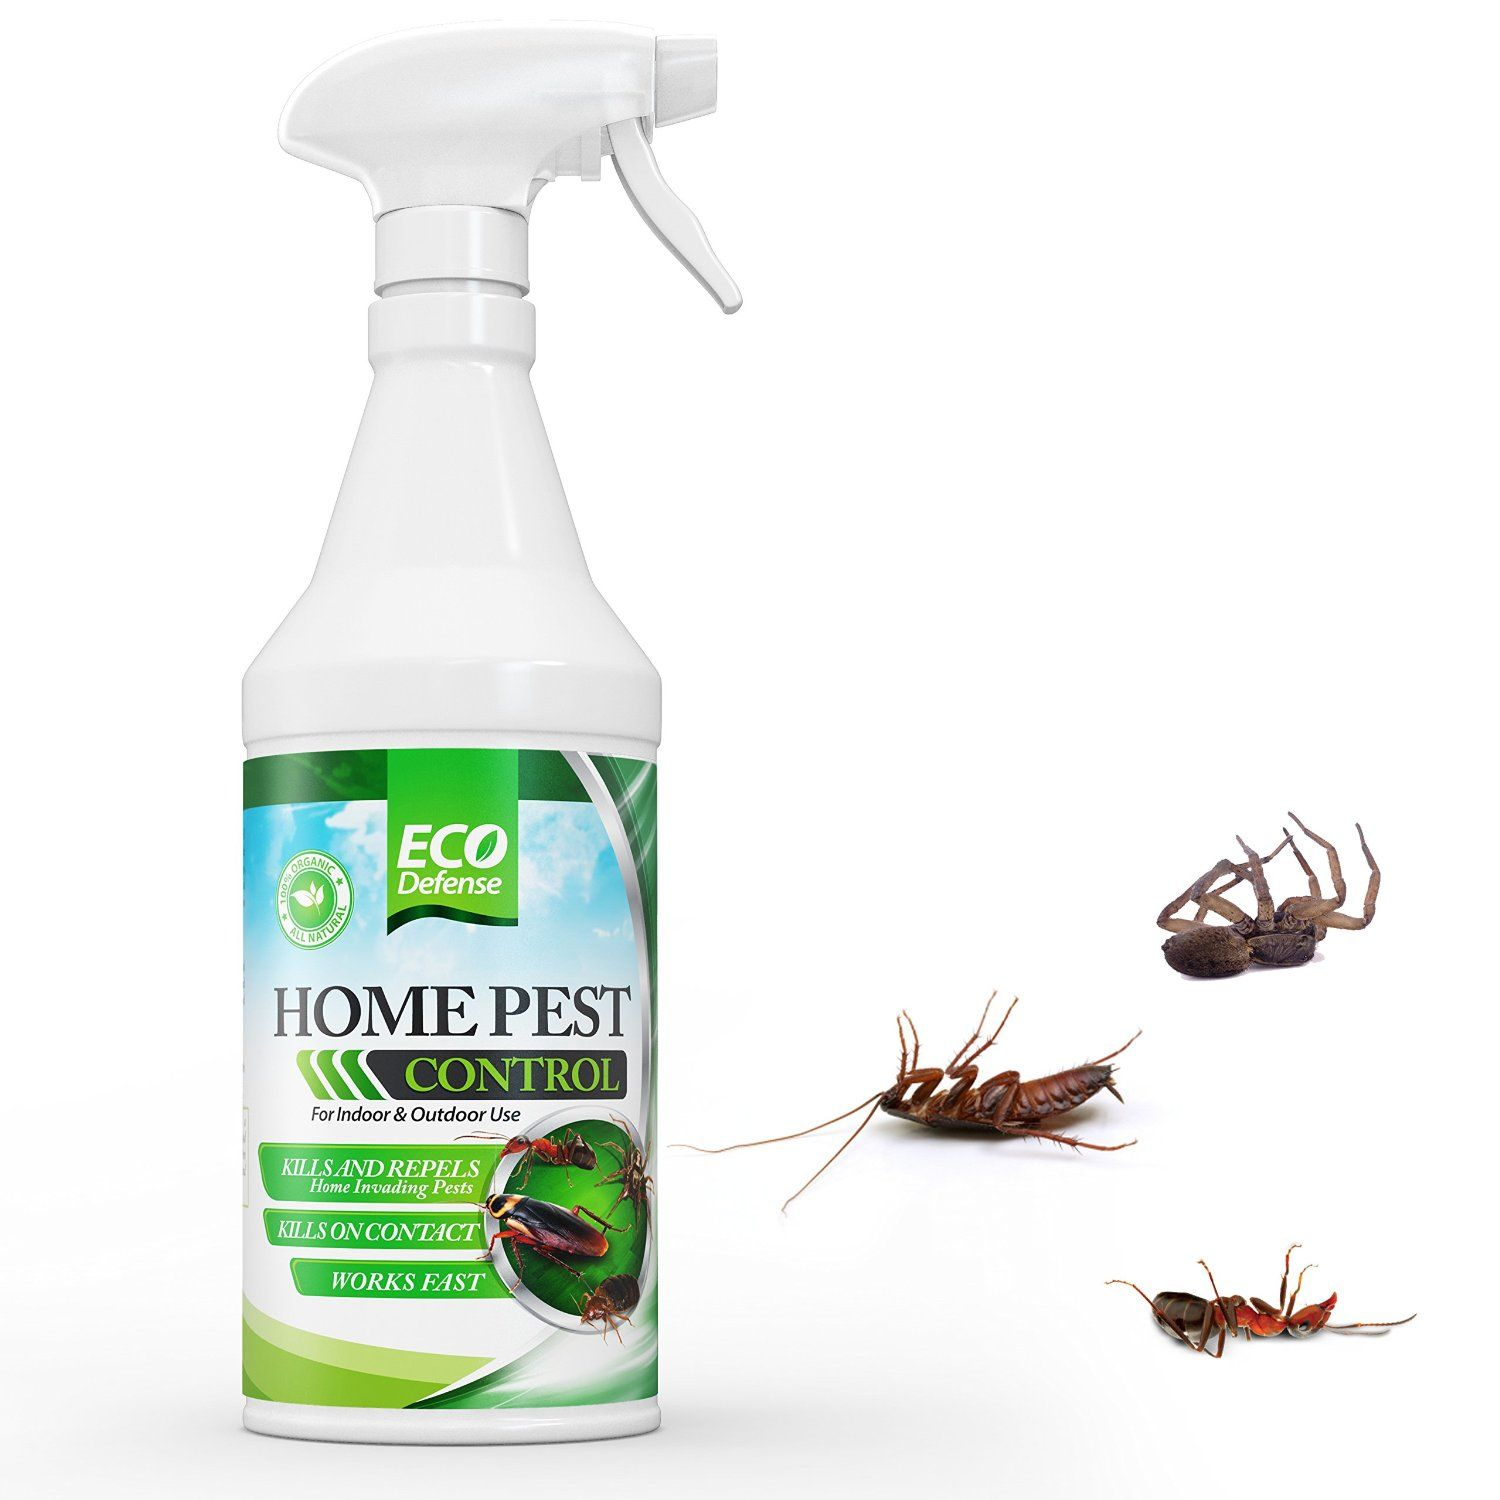 Eco Defense Organic Home Pest Control Spray Kills Repels Ants Roaches Spiders And Other Pests Guaranteed Natural Insect Child Pet Safe